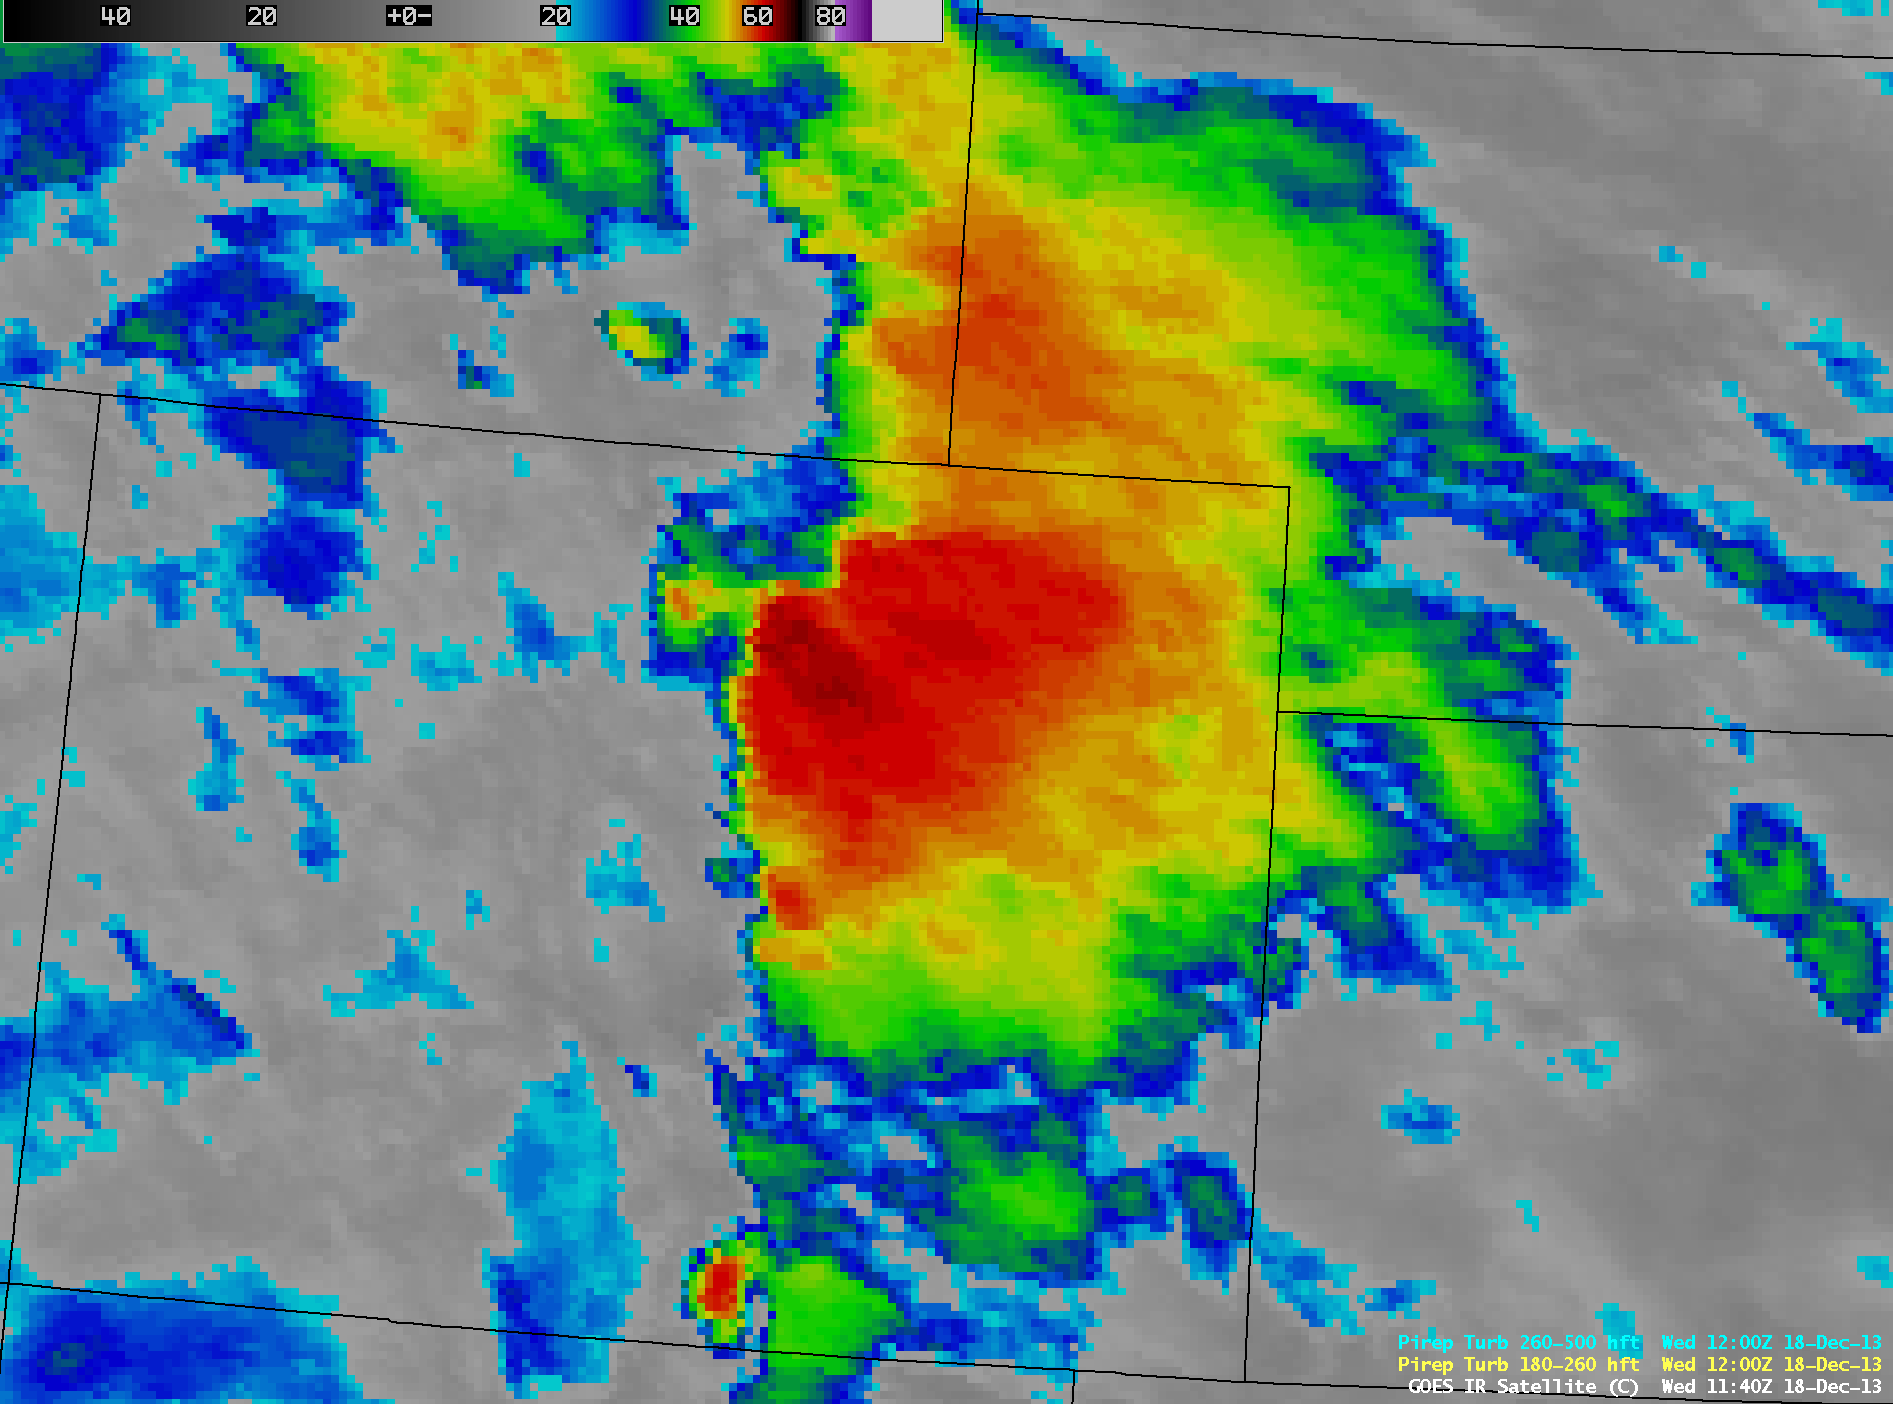 GOES-13 10.7 µm IR channel images (click to play animation)